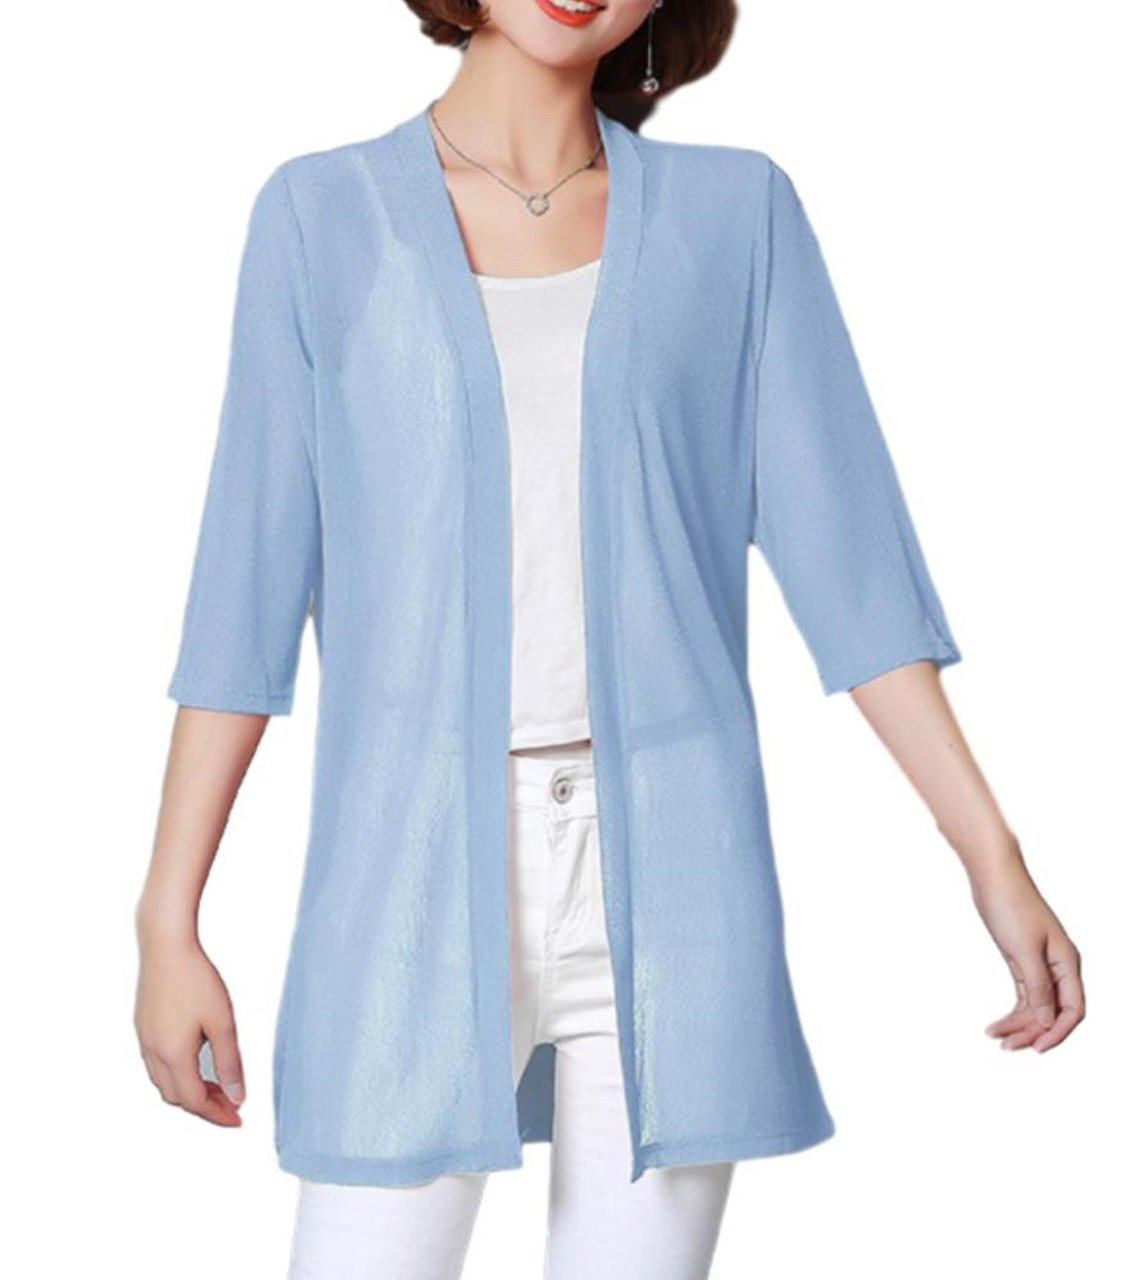 ten is heart Cardigan thin long-sleeve cape womens summer office gown elegant (X-Large(Asian sizeXXL), light blue) cardigan gown prom wedding formal bridesmaid evening homecoming long sweater dressing